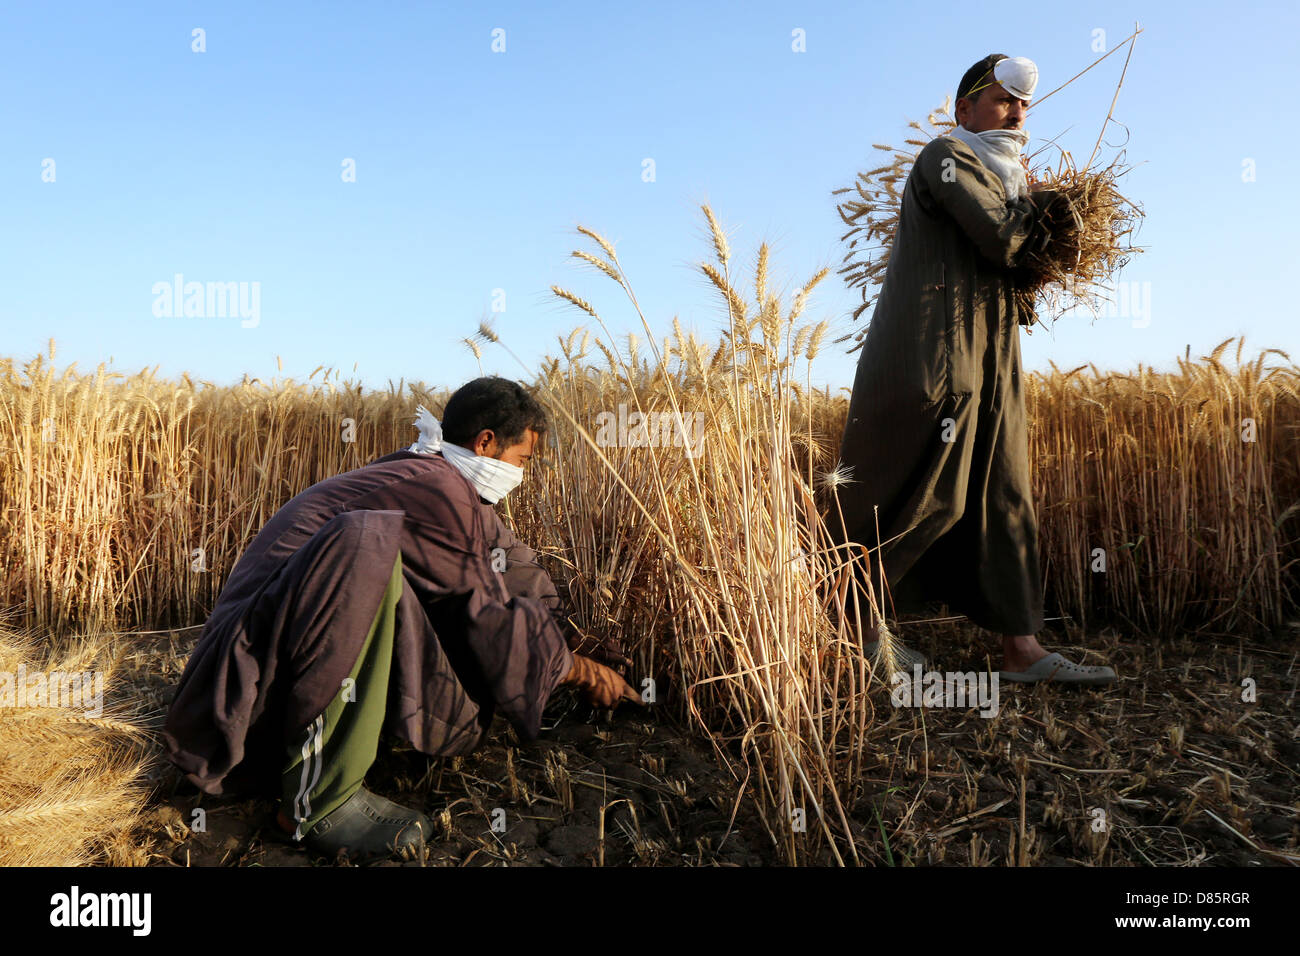 farmer harvesting wheat, Upper Egypt Stock Photo